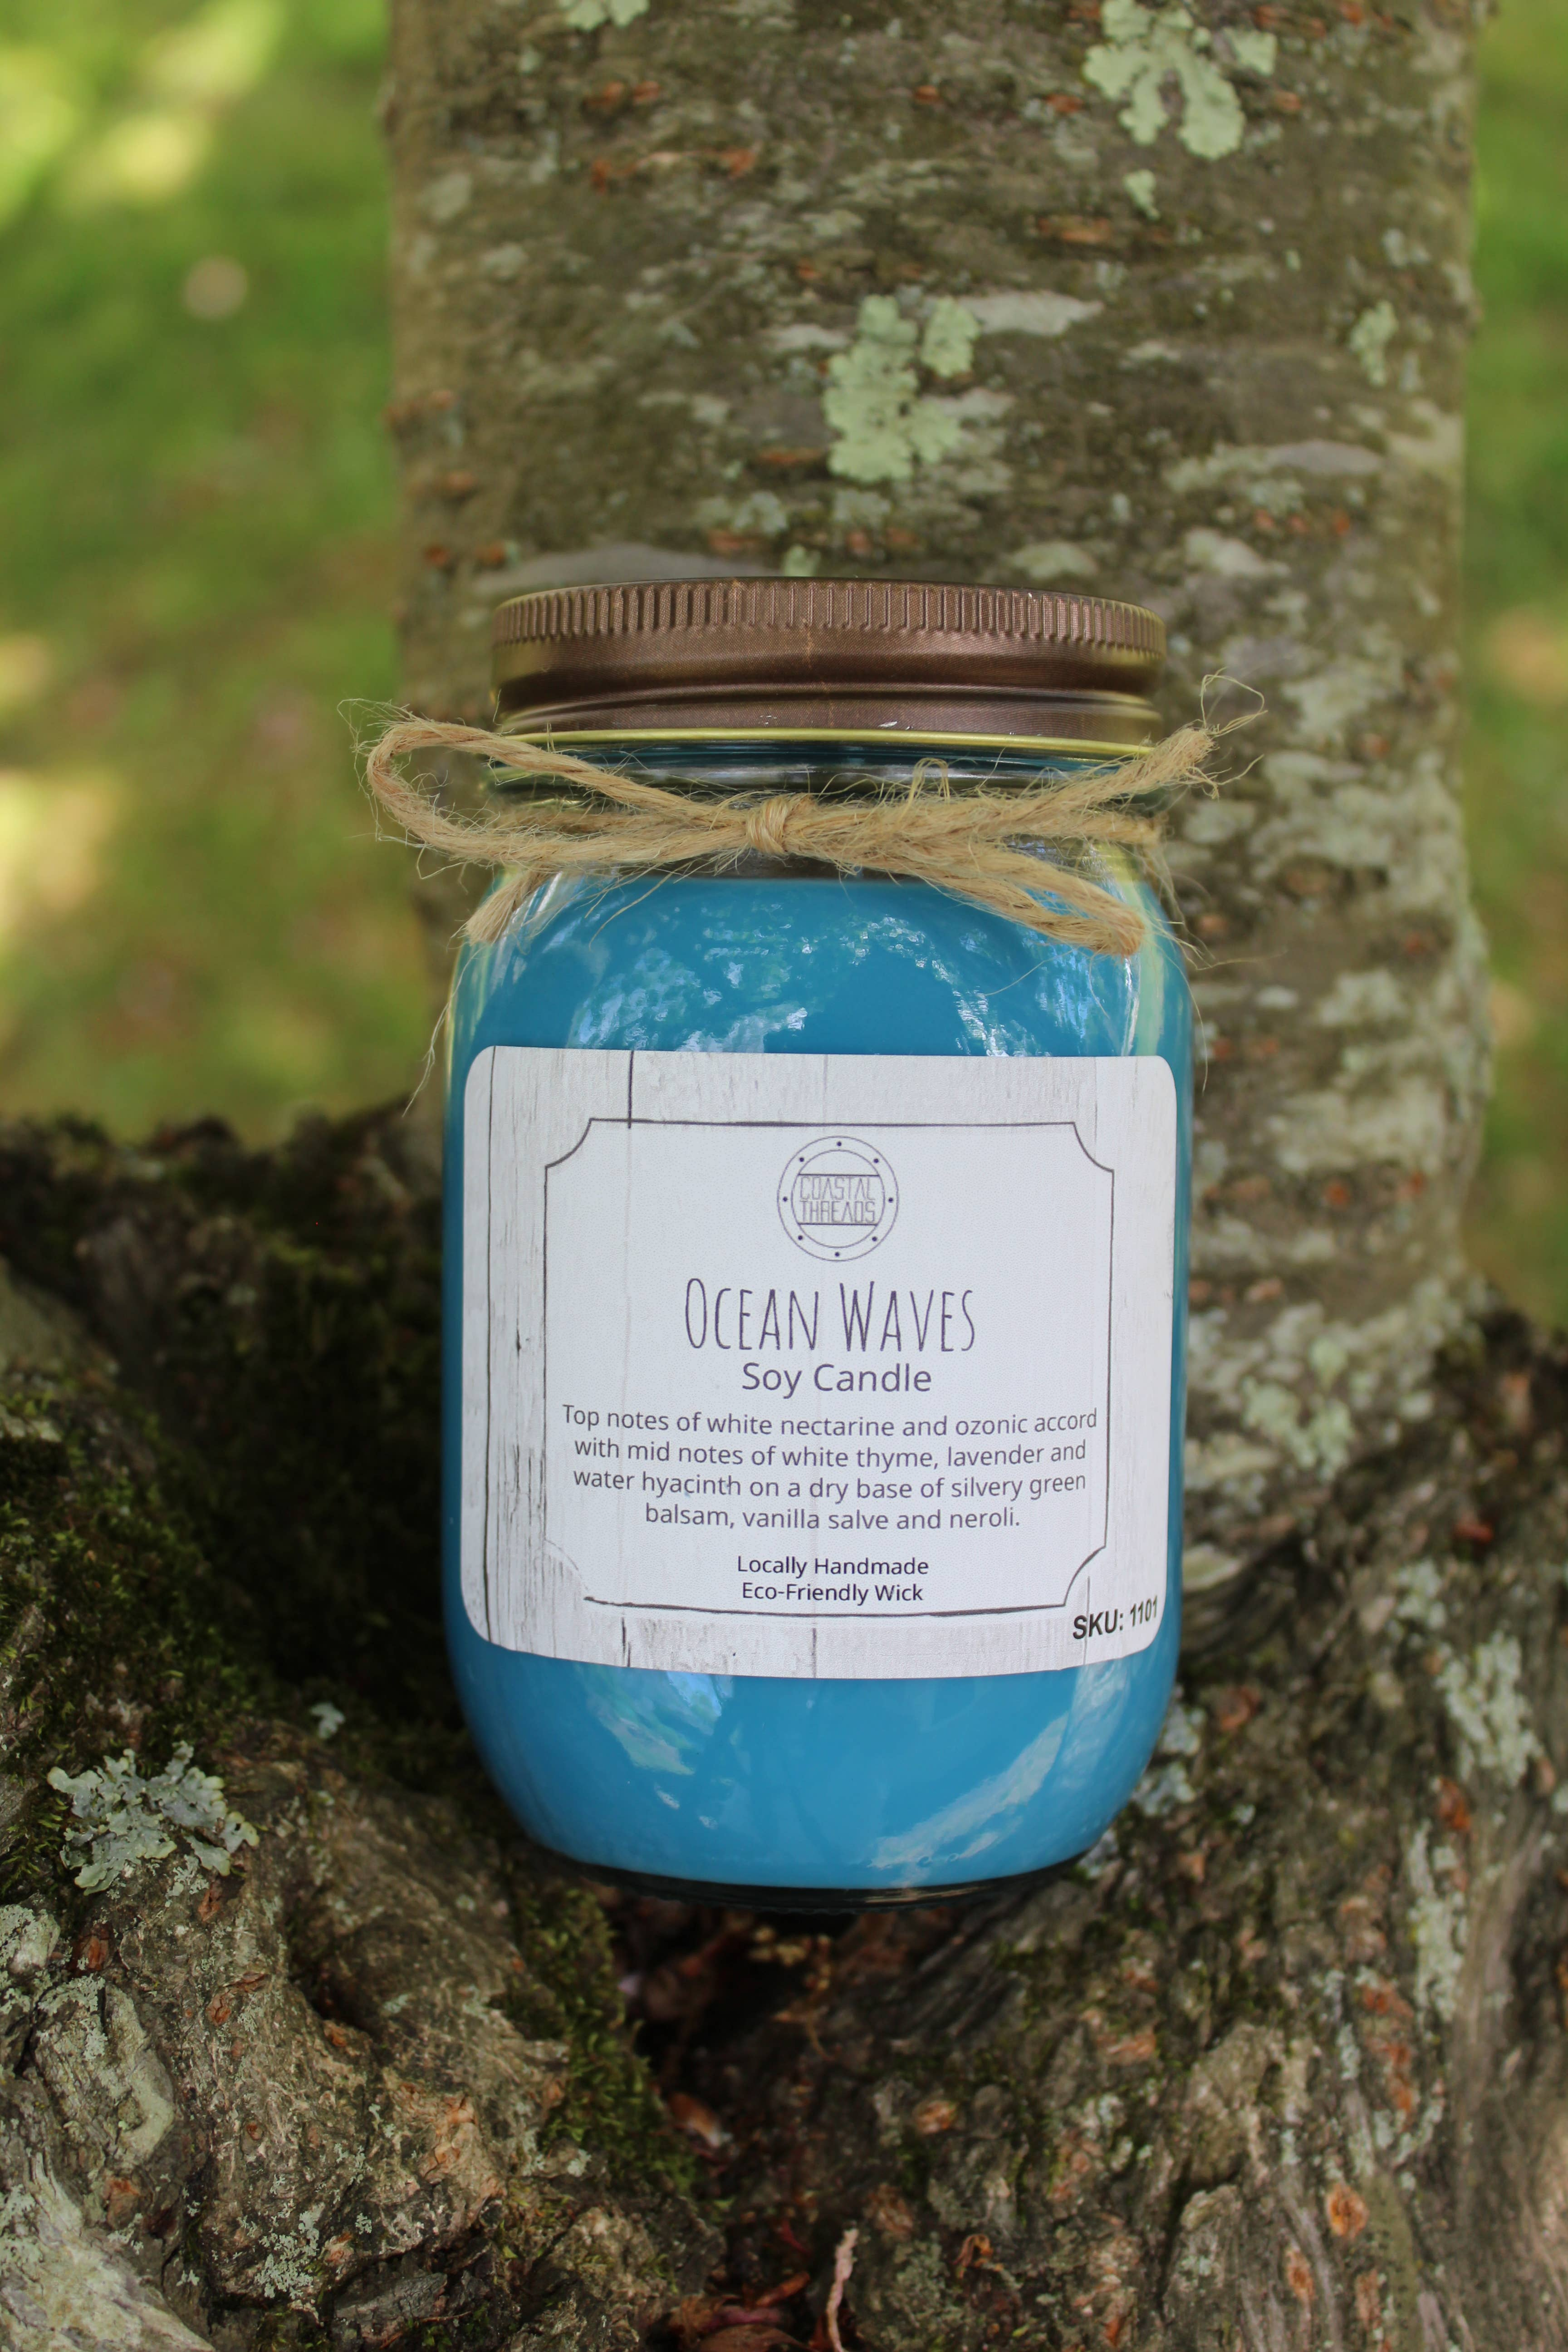 Ocean Waves Soy Candle | Trada Marketplace